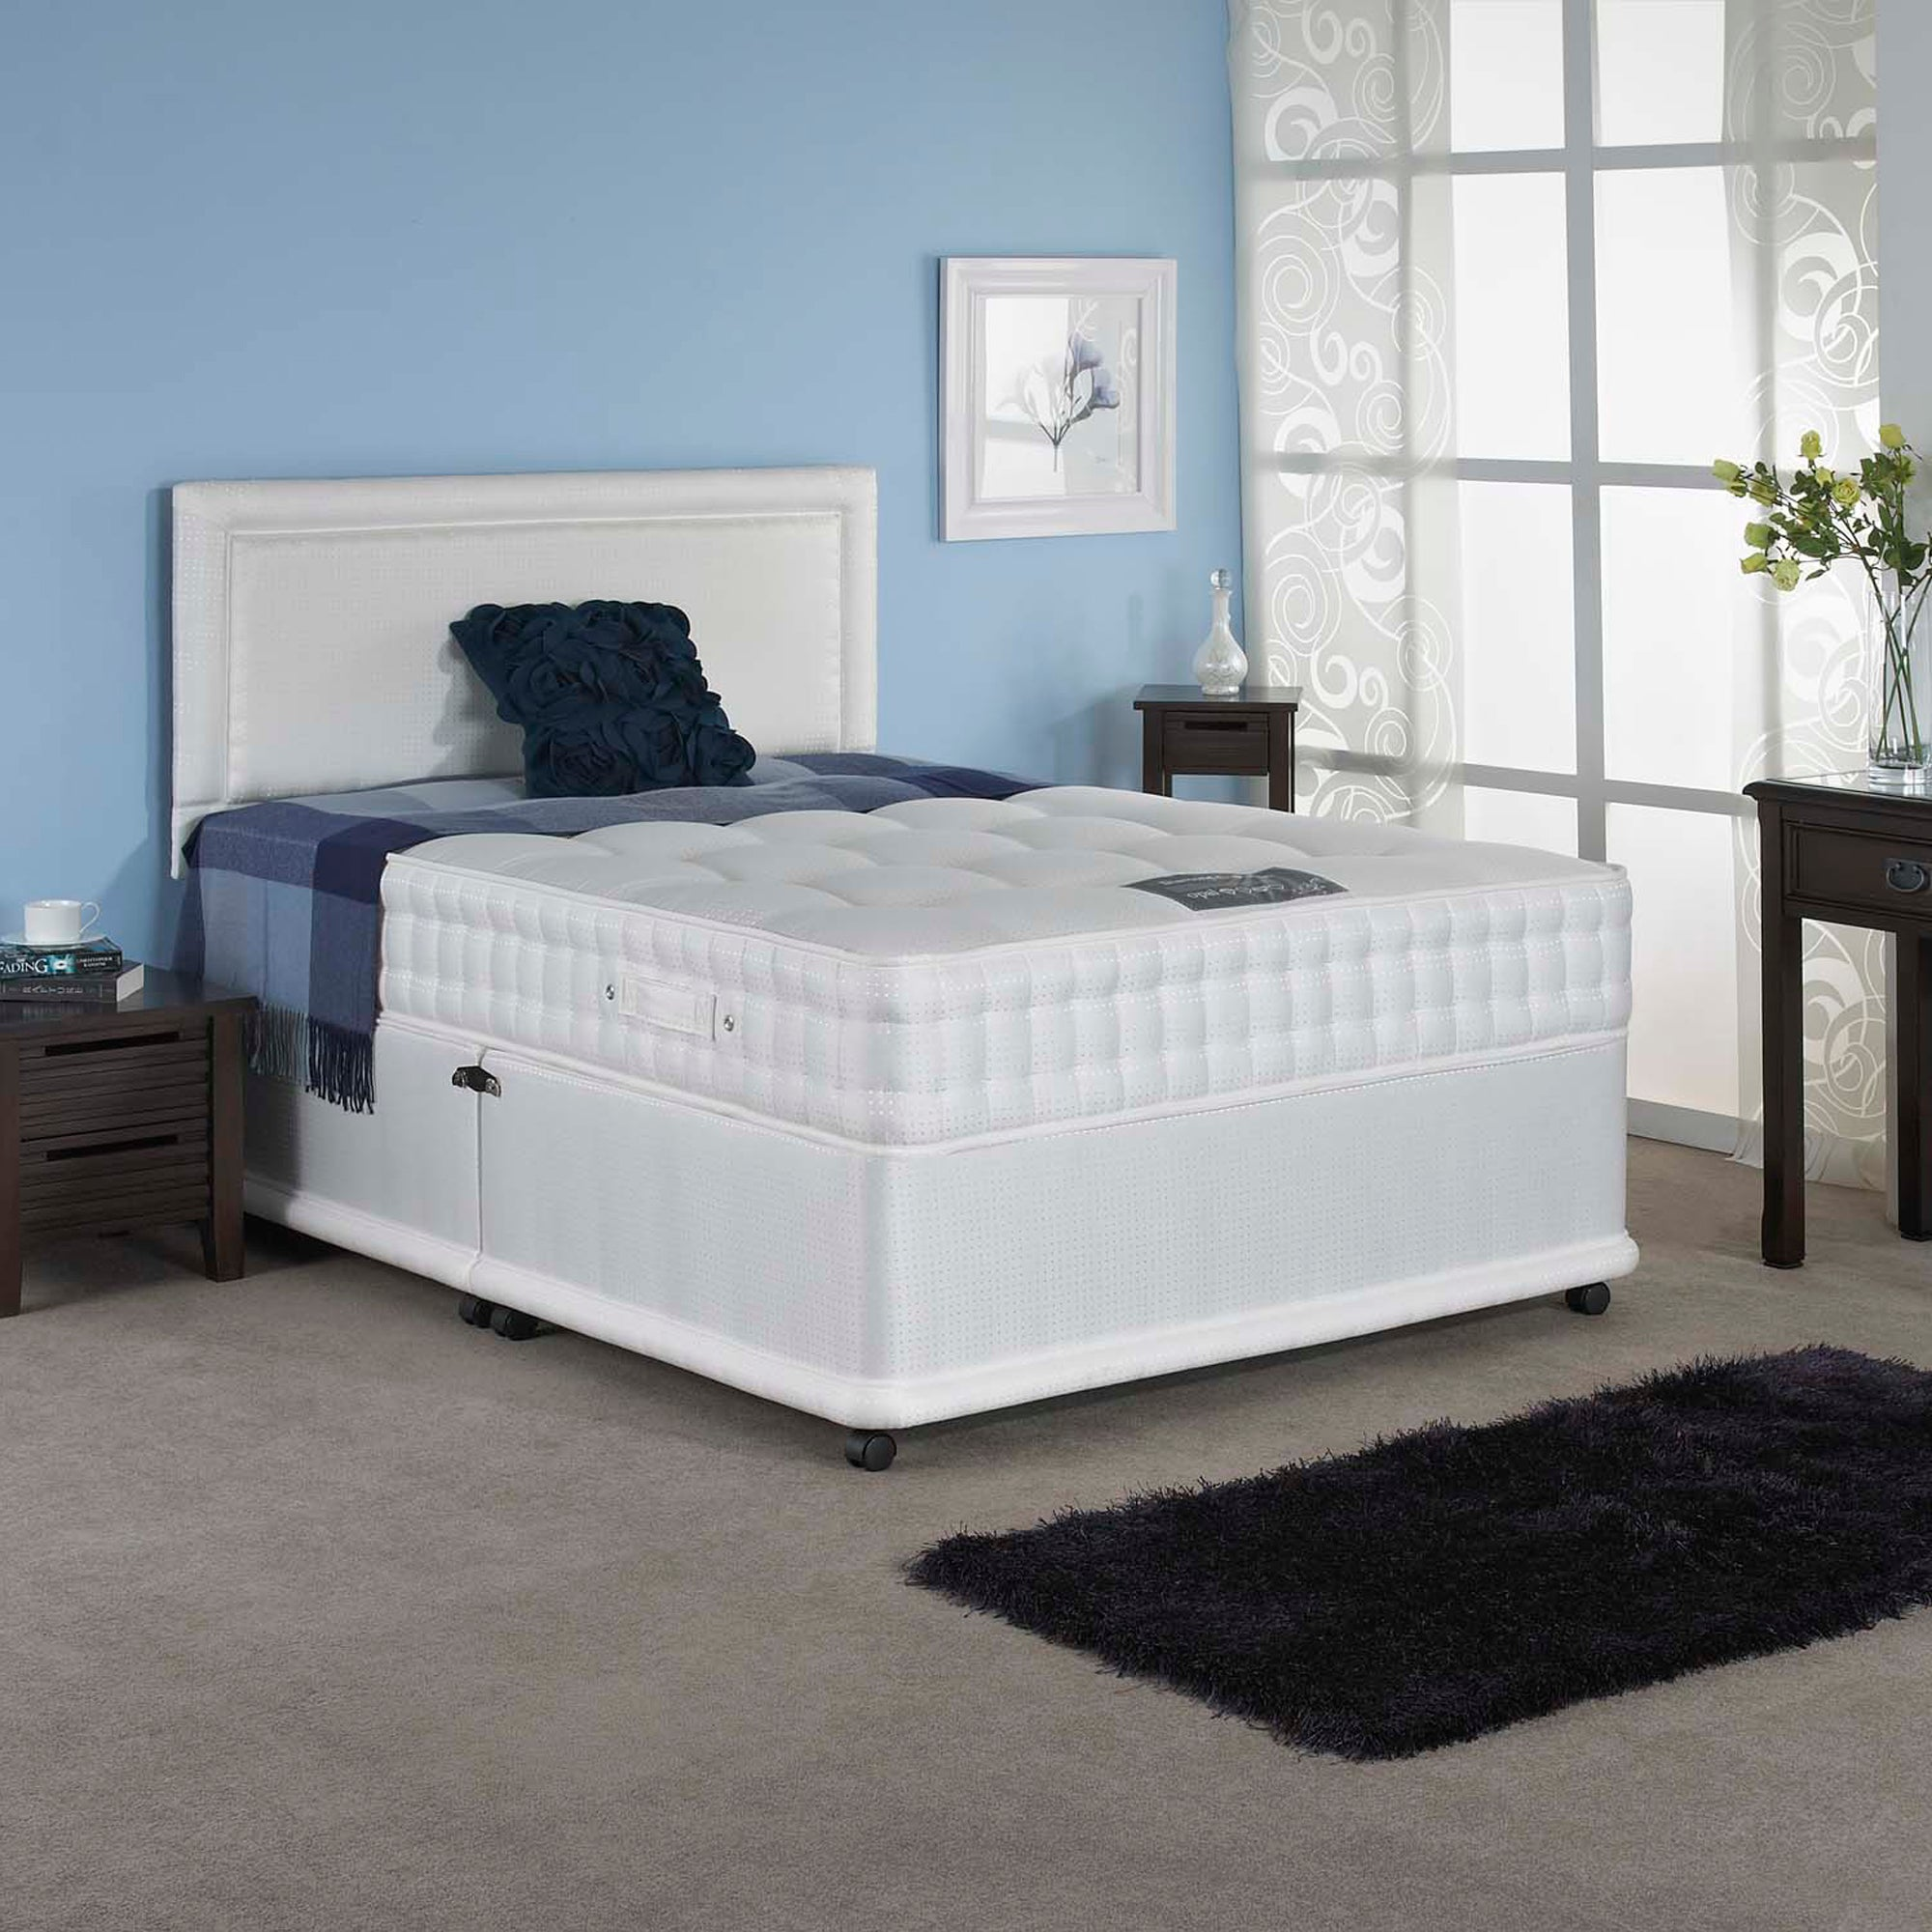 Carlisle Padded Divan Set with 4 drawers